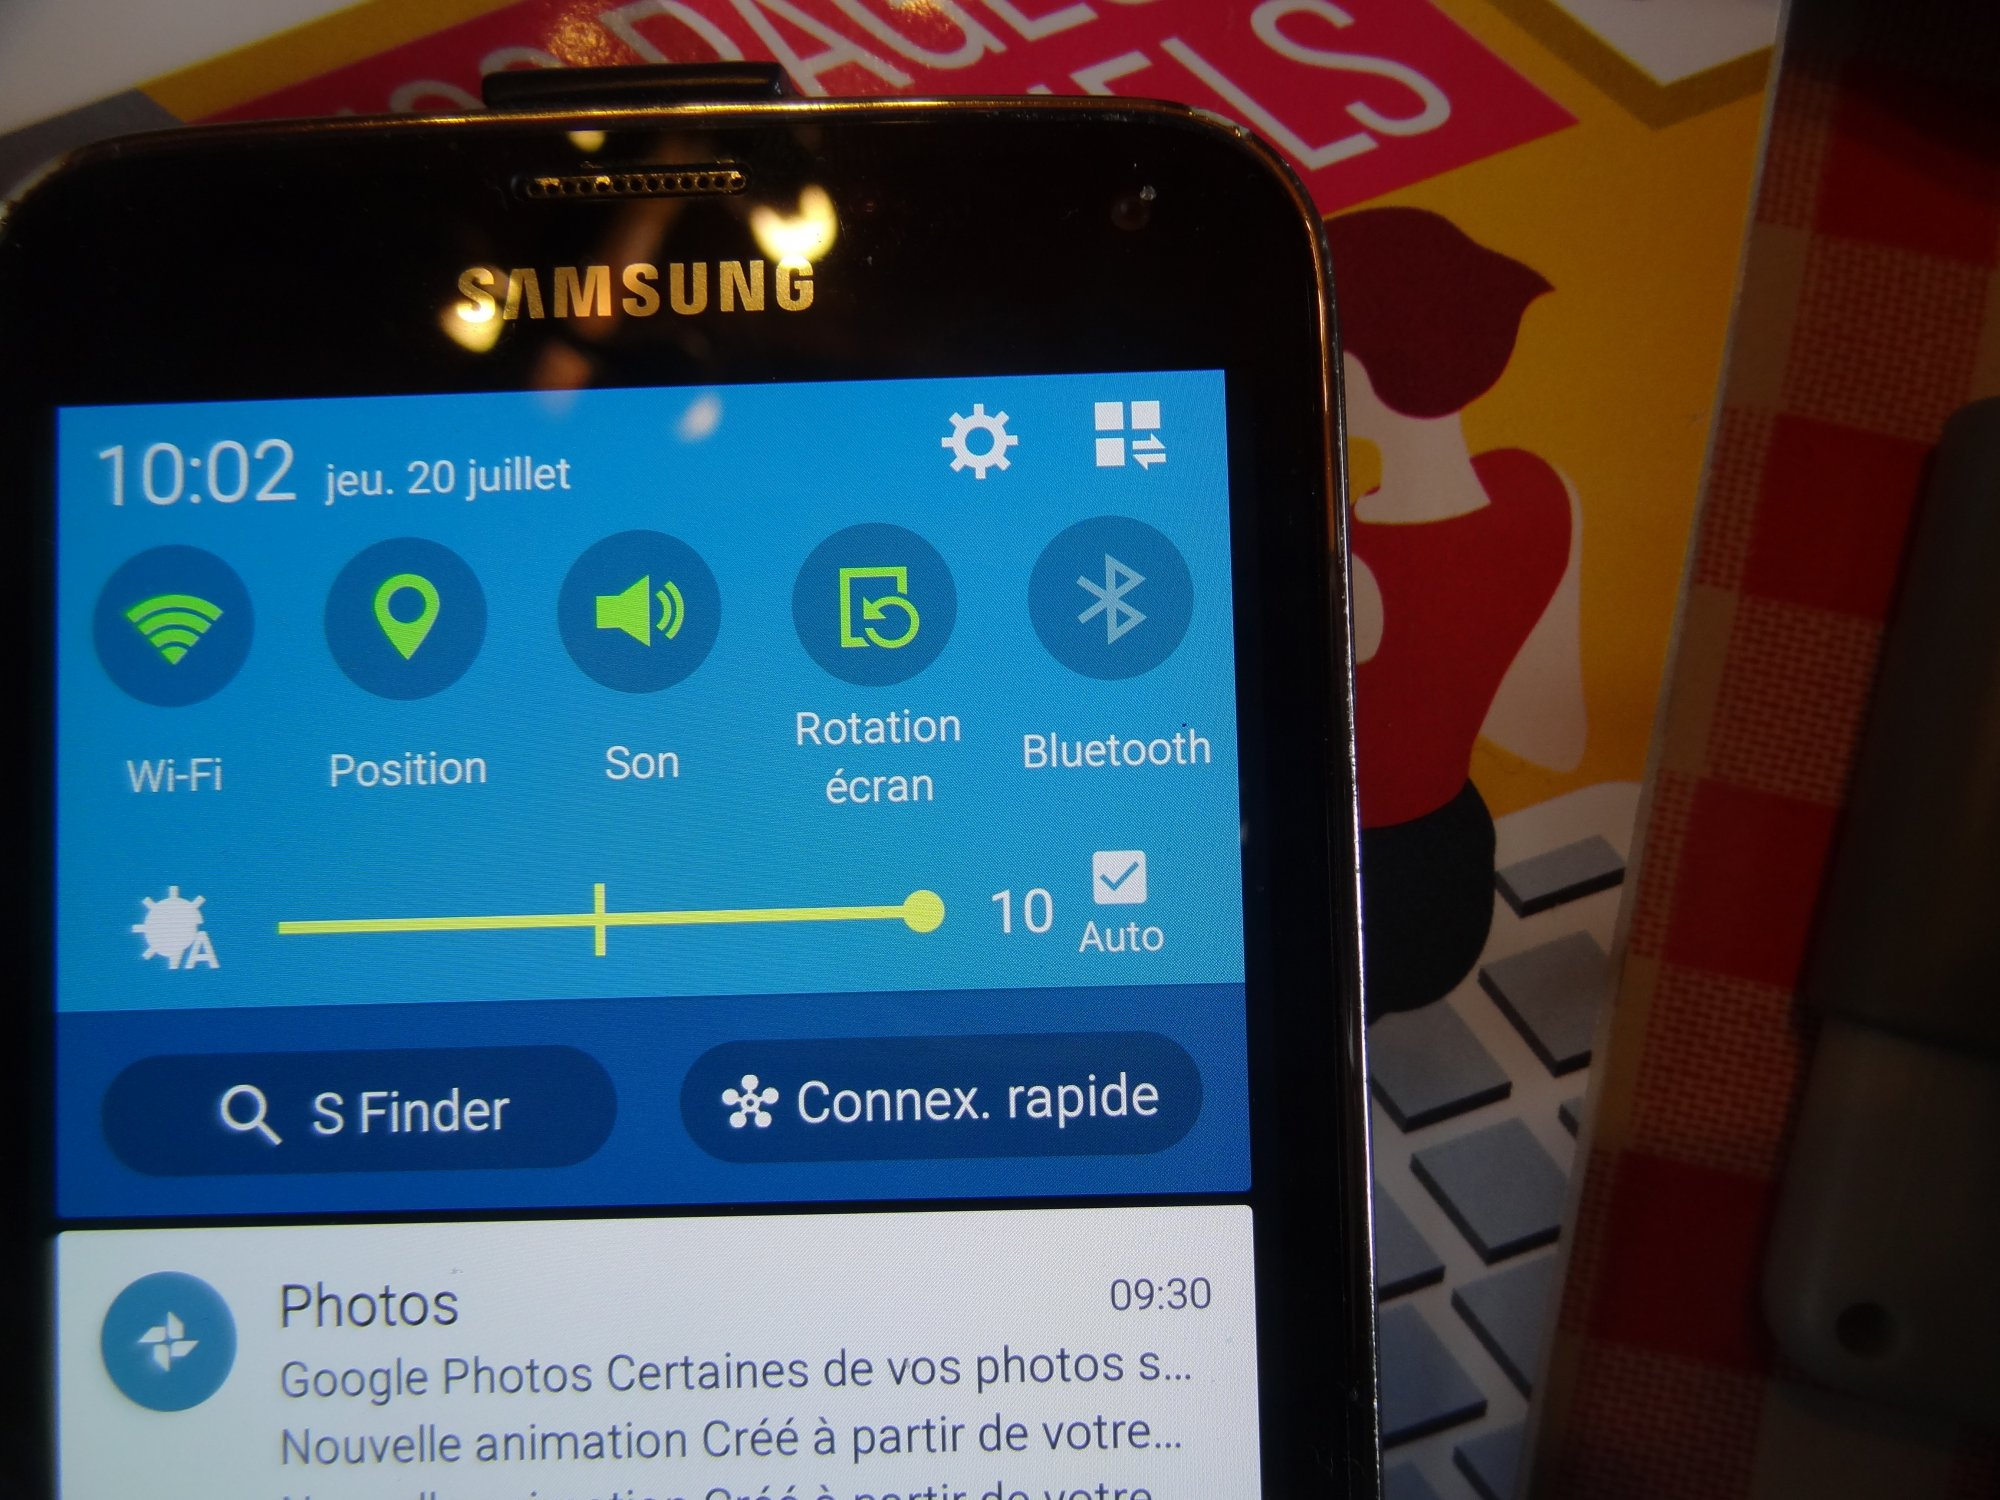 Is my positionning or gyro device broken ? - Samsung Galaxy